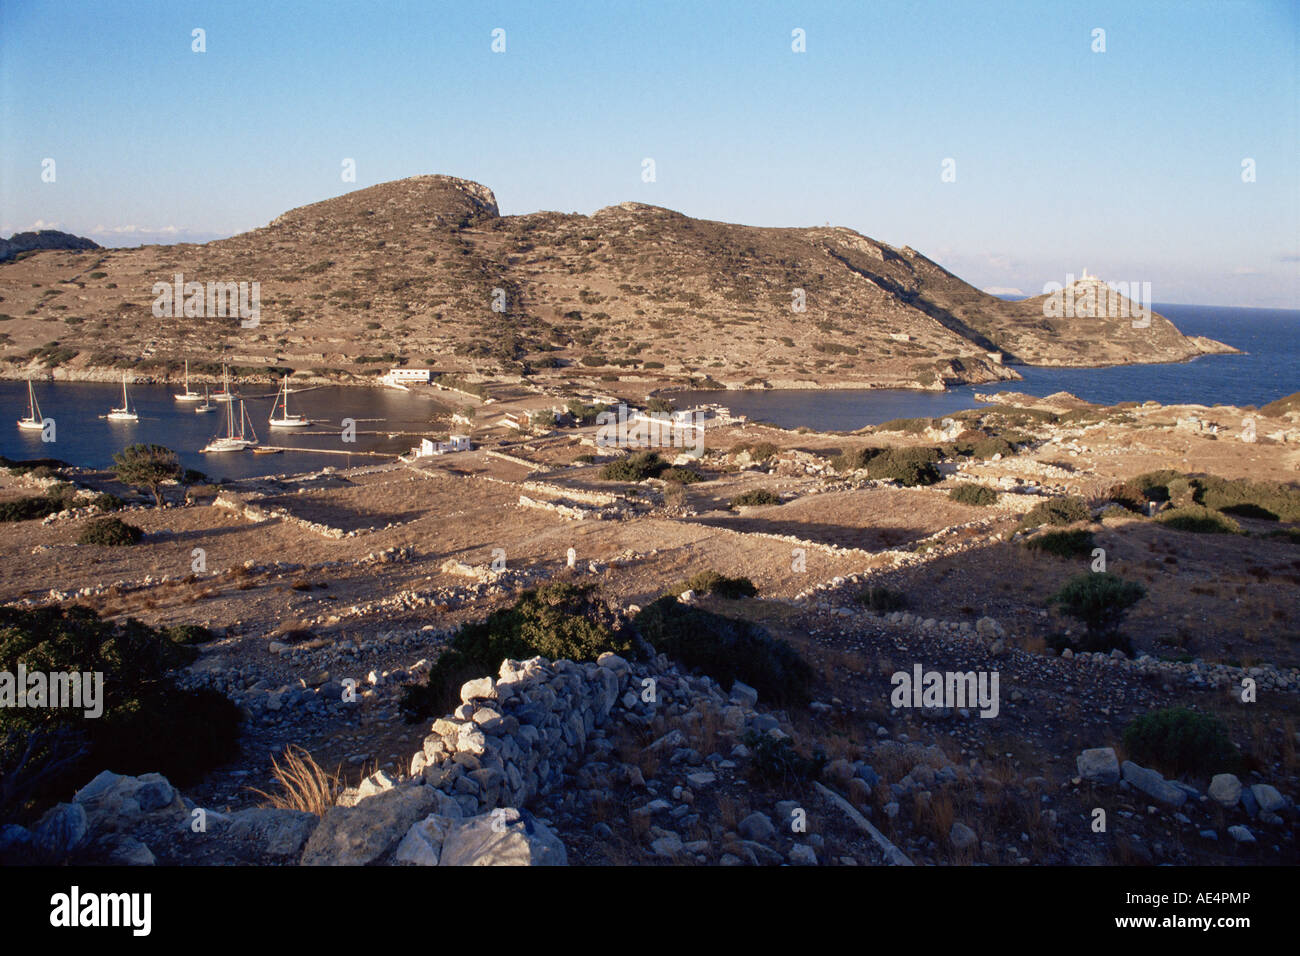 Hellenistic and Roman sites, Cnidos, Turkey, Aegean, Eurasia - Stock Image